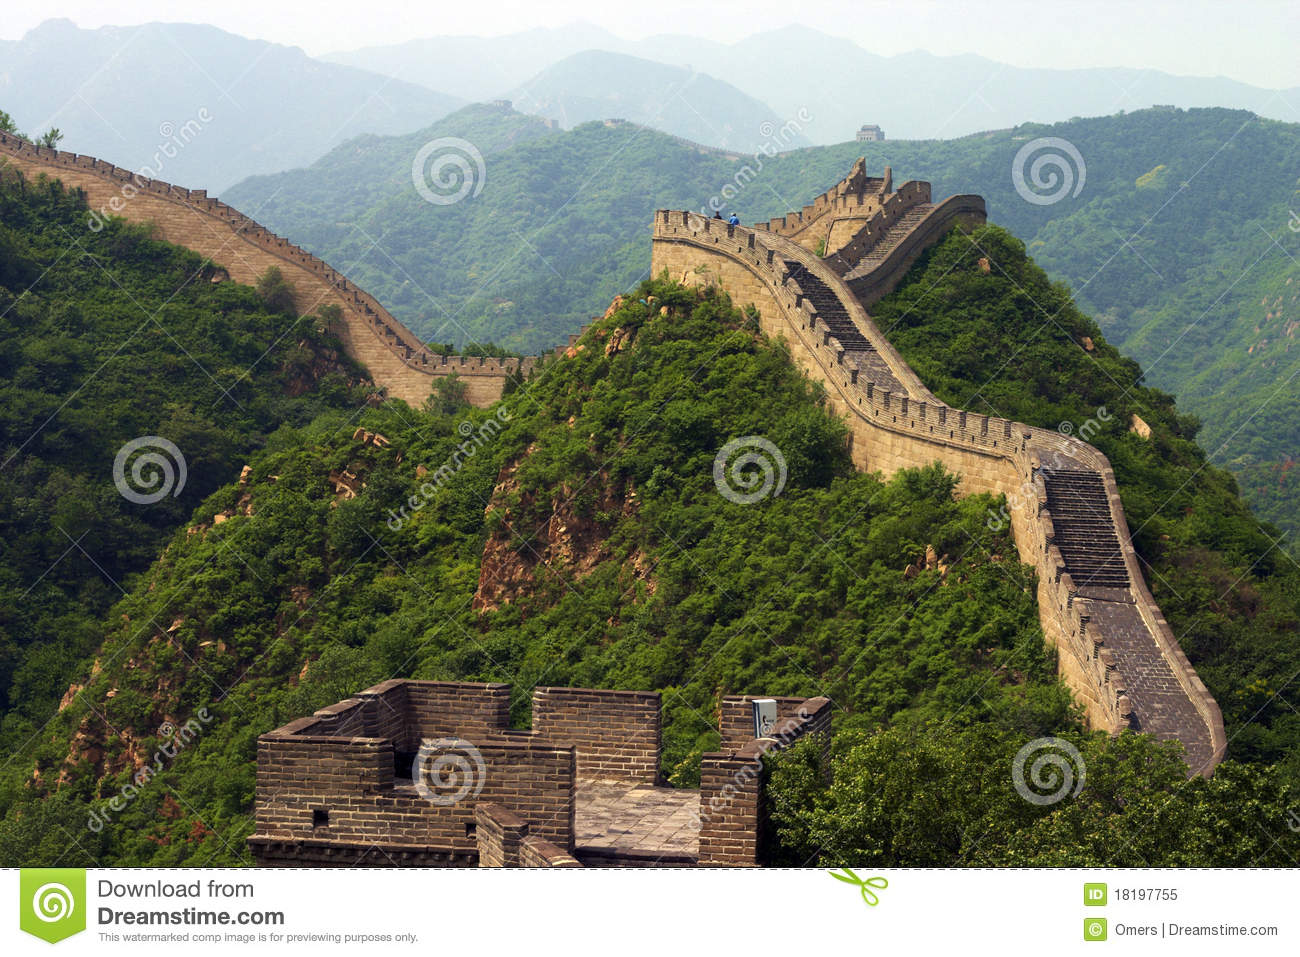 Le mur chinois grand